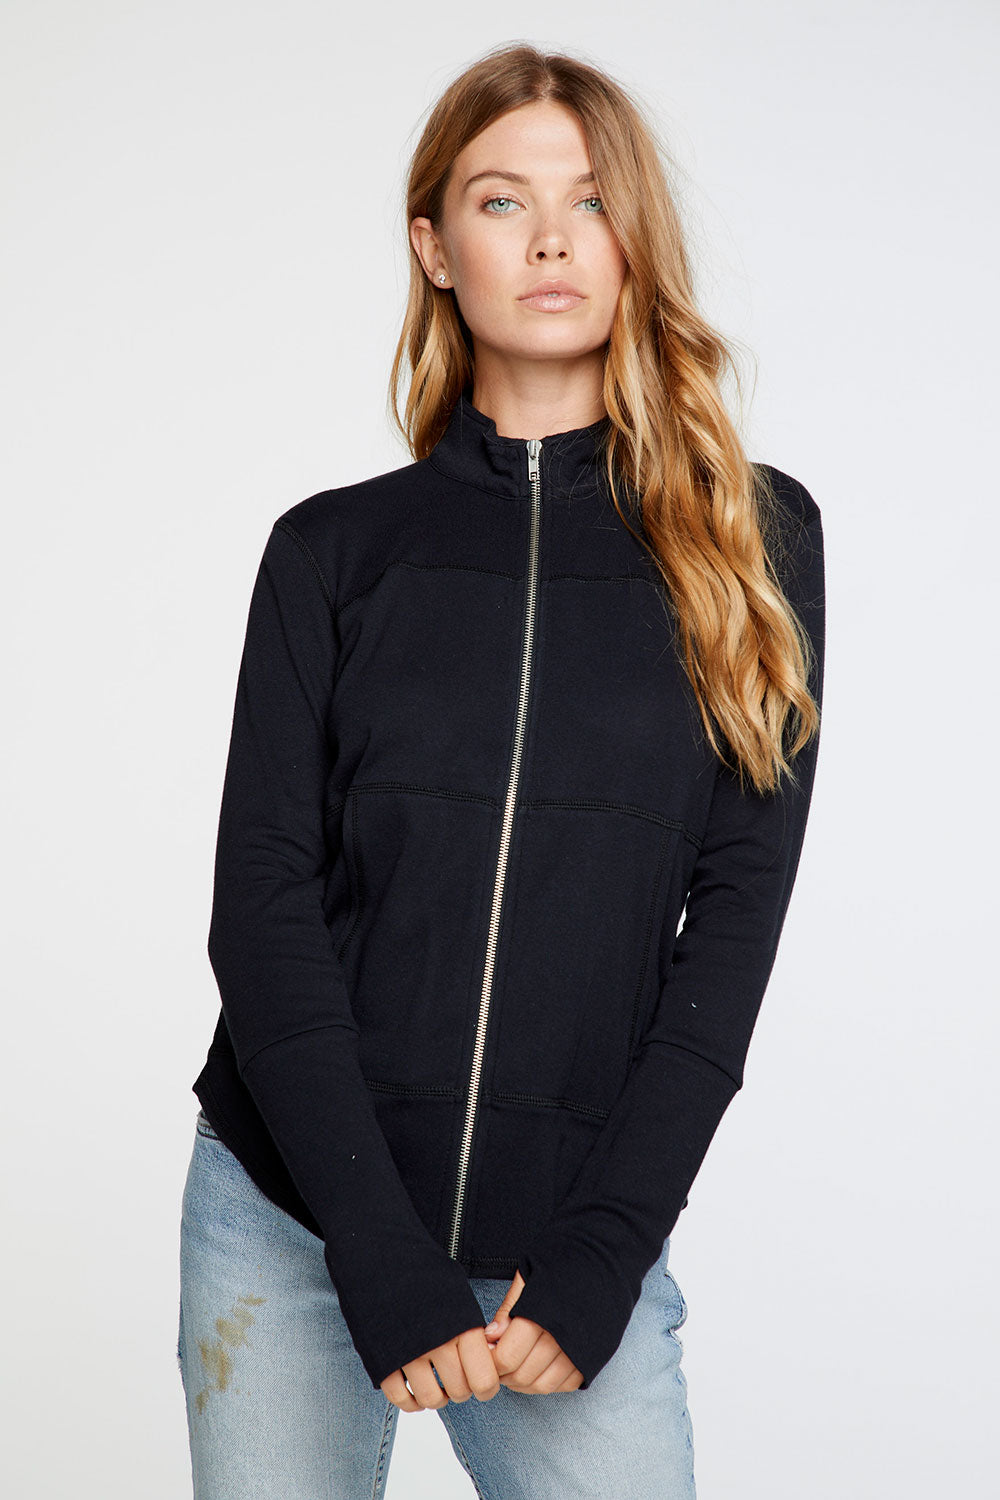 Baby Rib Mock Neck Long Sleeve Thumbhole Jacket in True Black